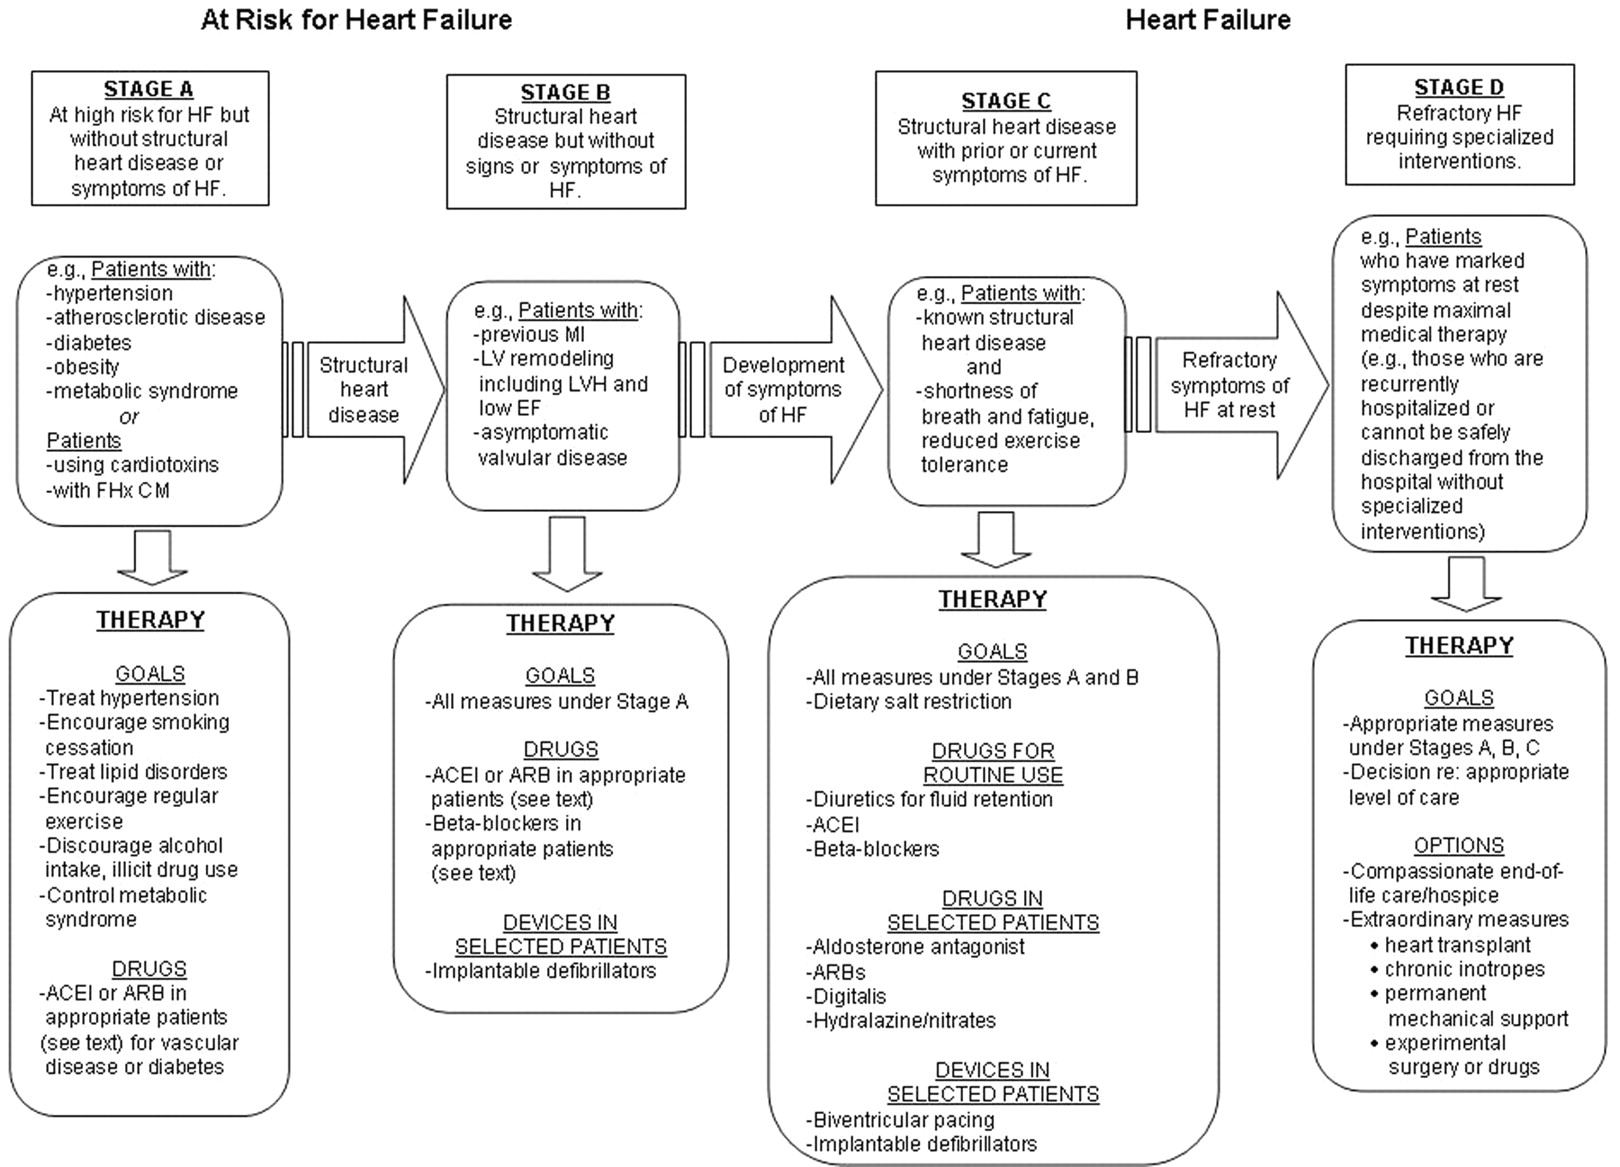 2009 Focused Update Incorporated Into the ACC/AHA 2005